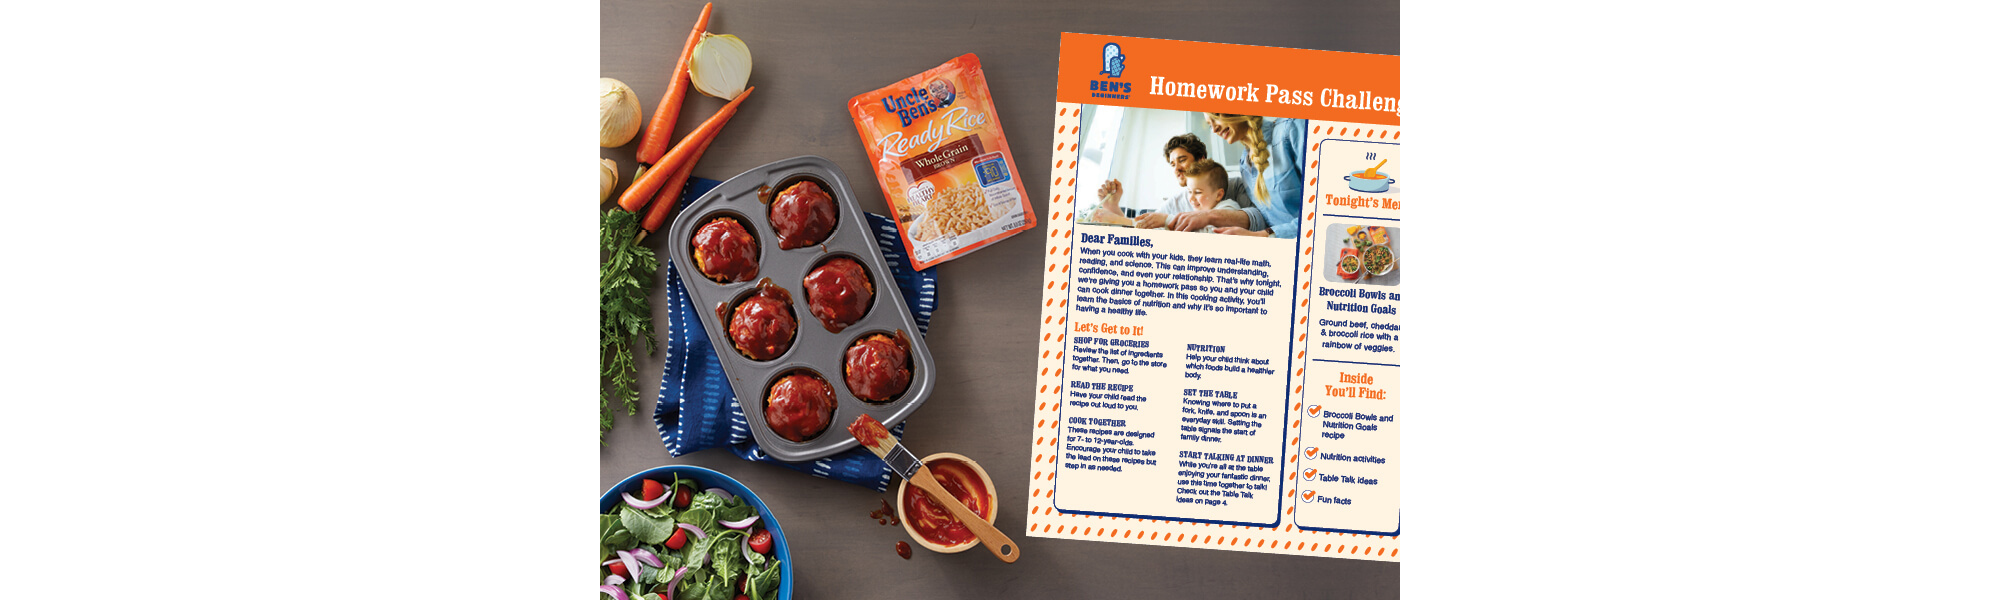 Uncle Ben's Cooking Guides, Image 1